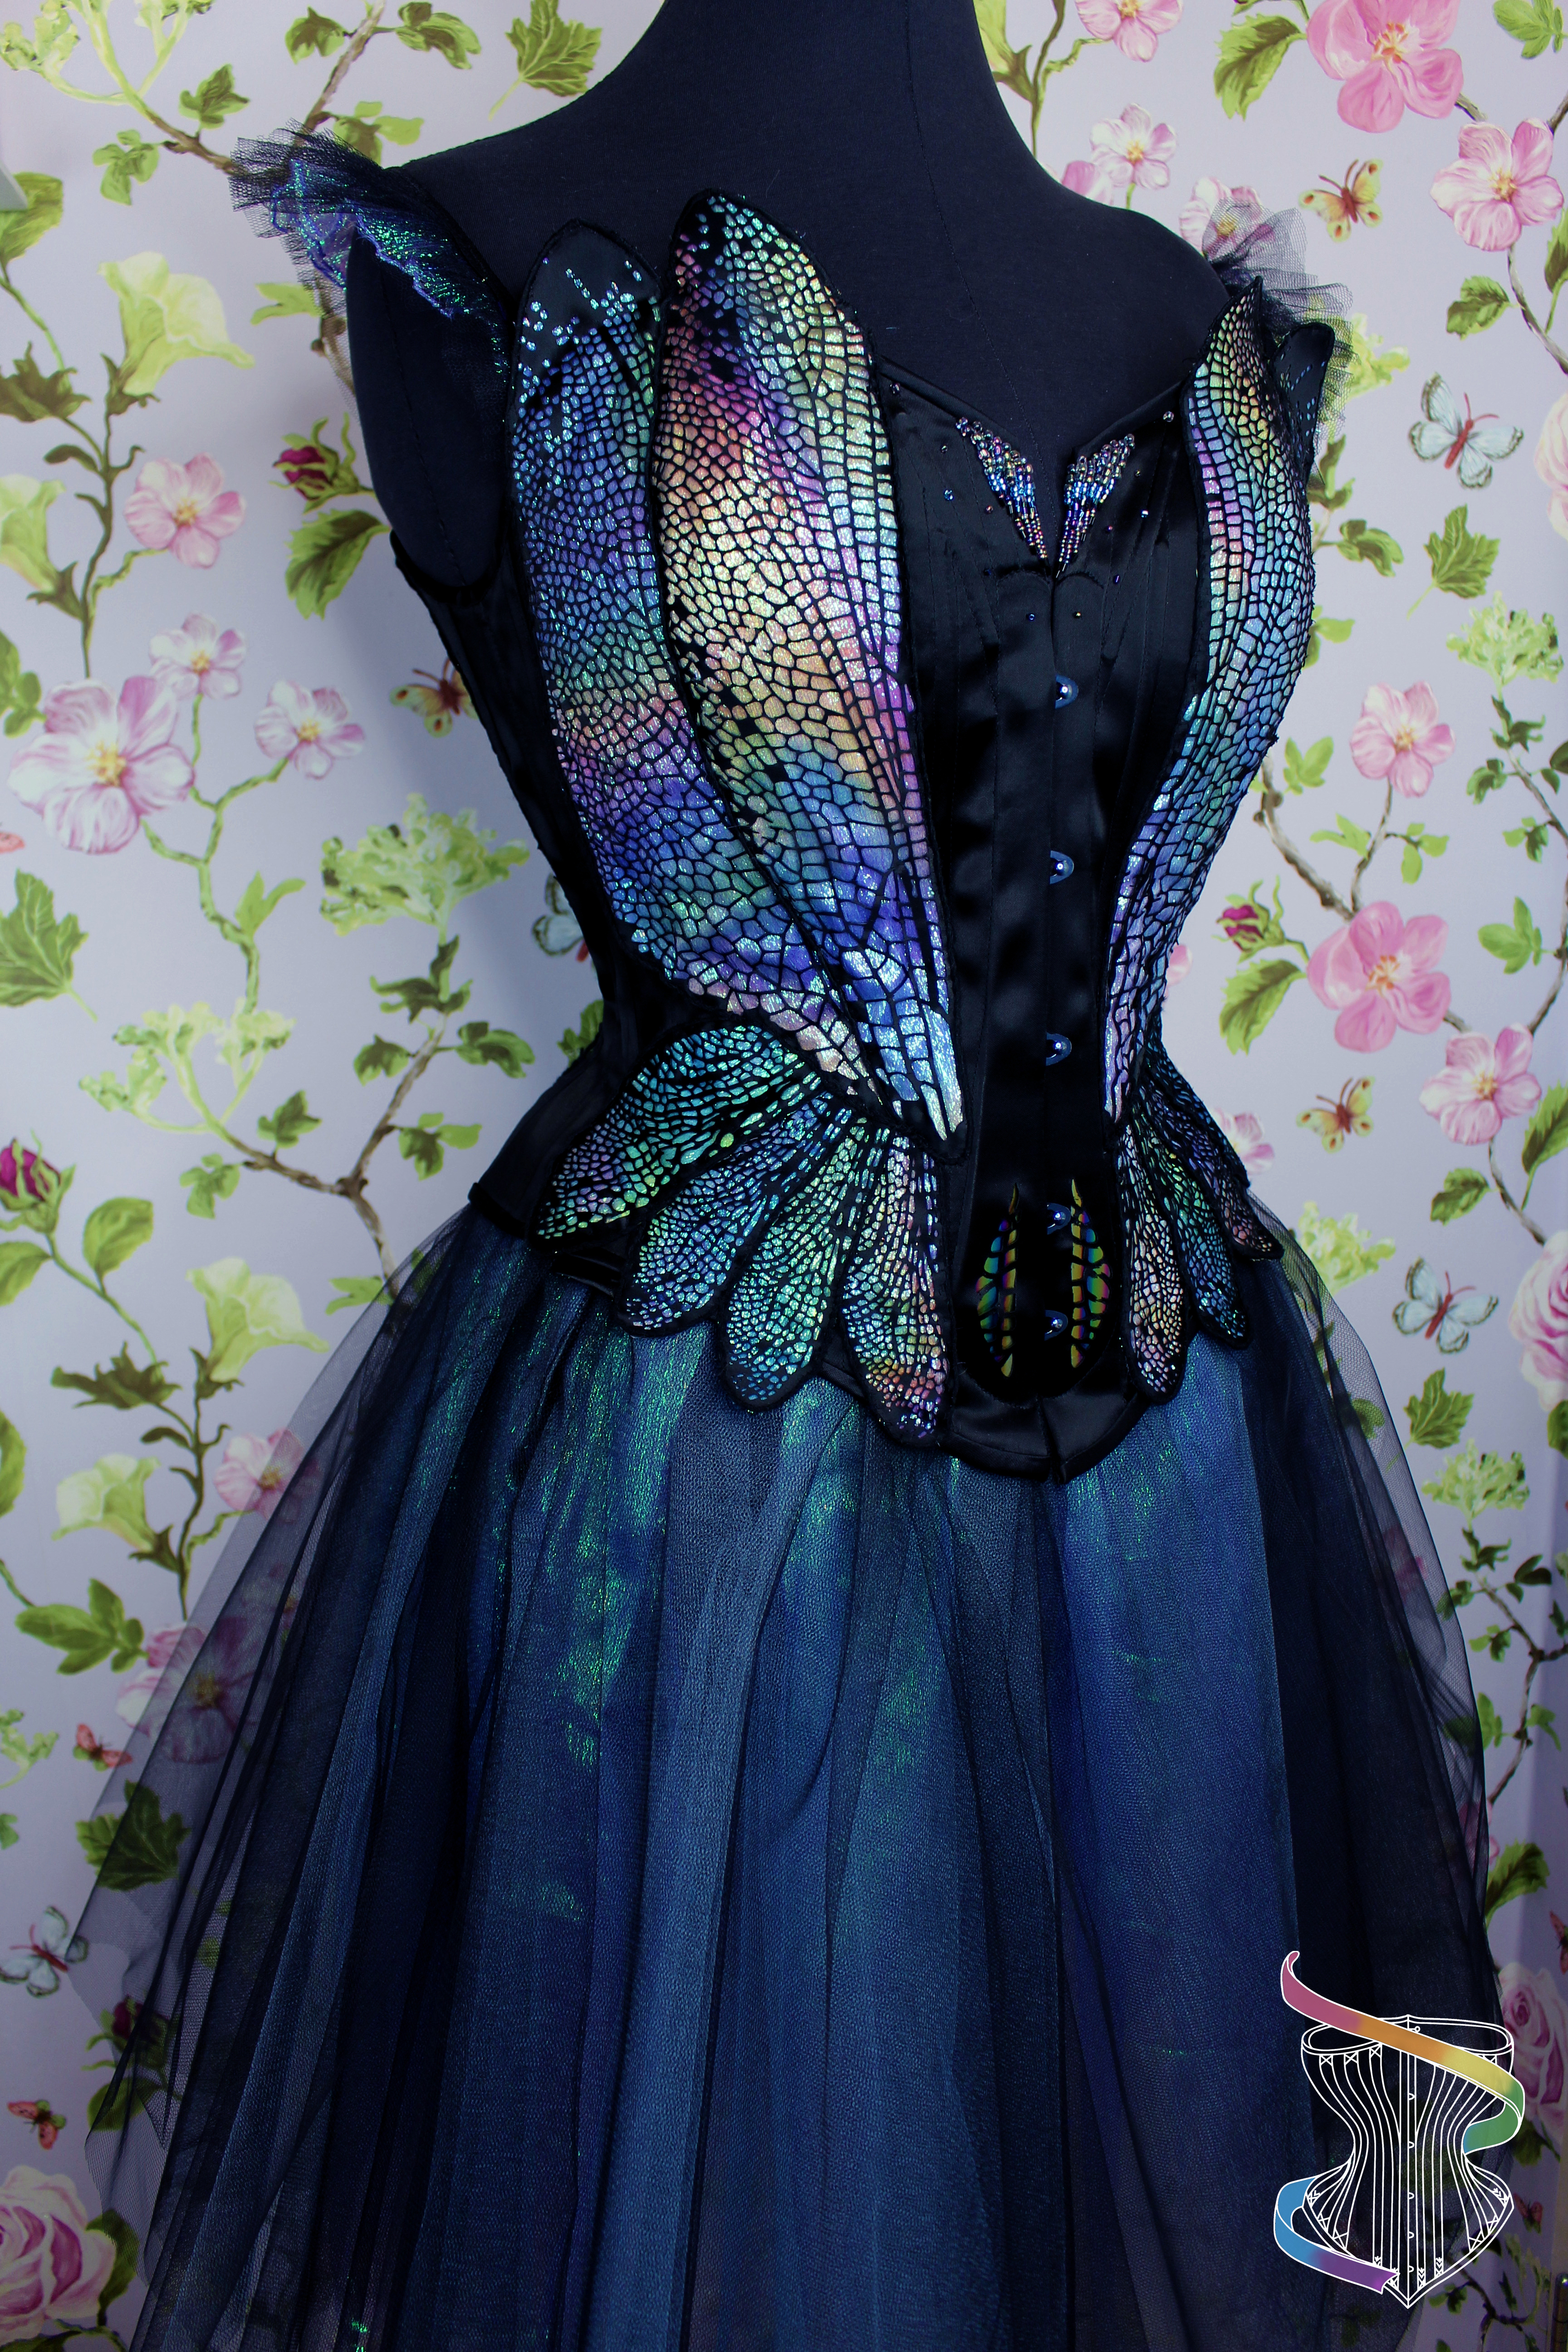 Dragonfly corset with tule skirt